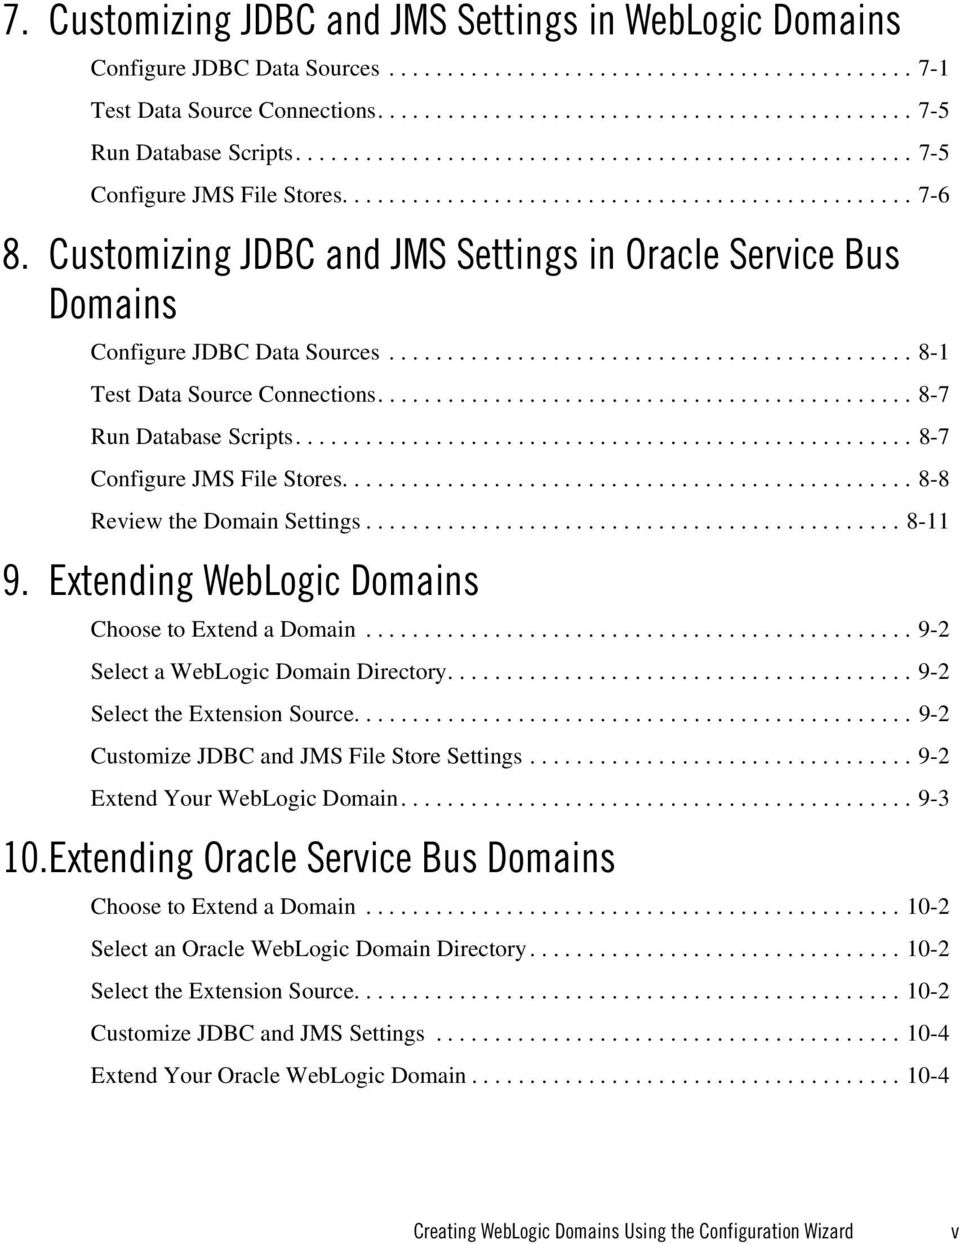 Customizing JDBC and JMS Settings in Oracle Service Bus Domains Configure JDBC Data Sources............................................. 8-1 Test Data Source Connections.............................................. 8-7 Run Database Scripts.